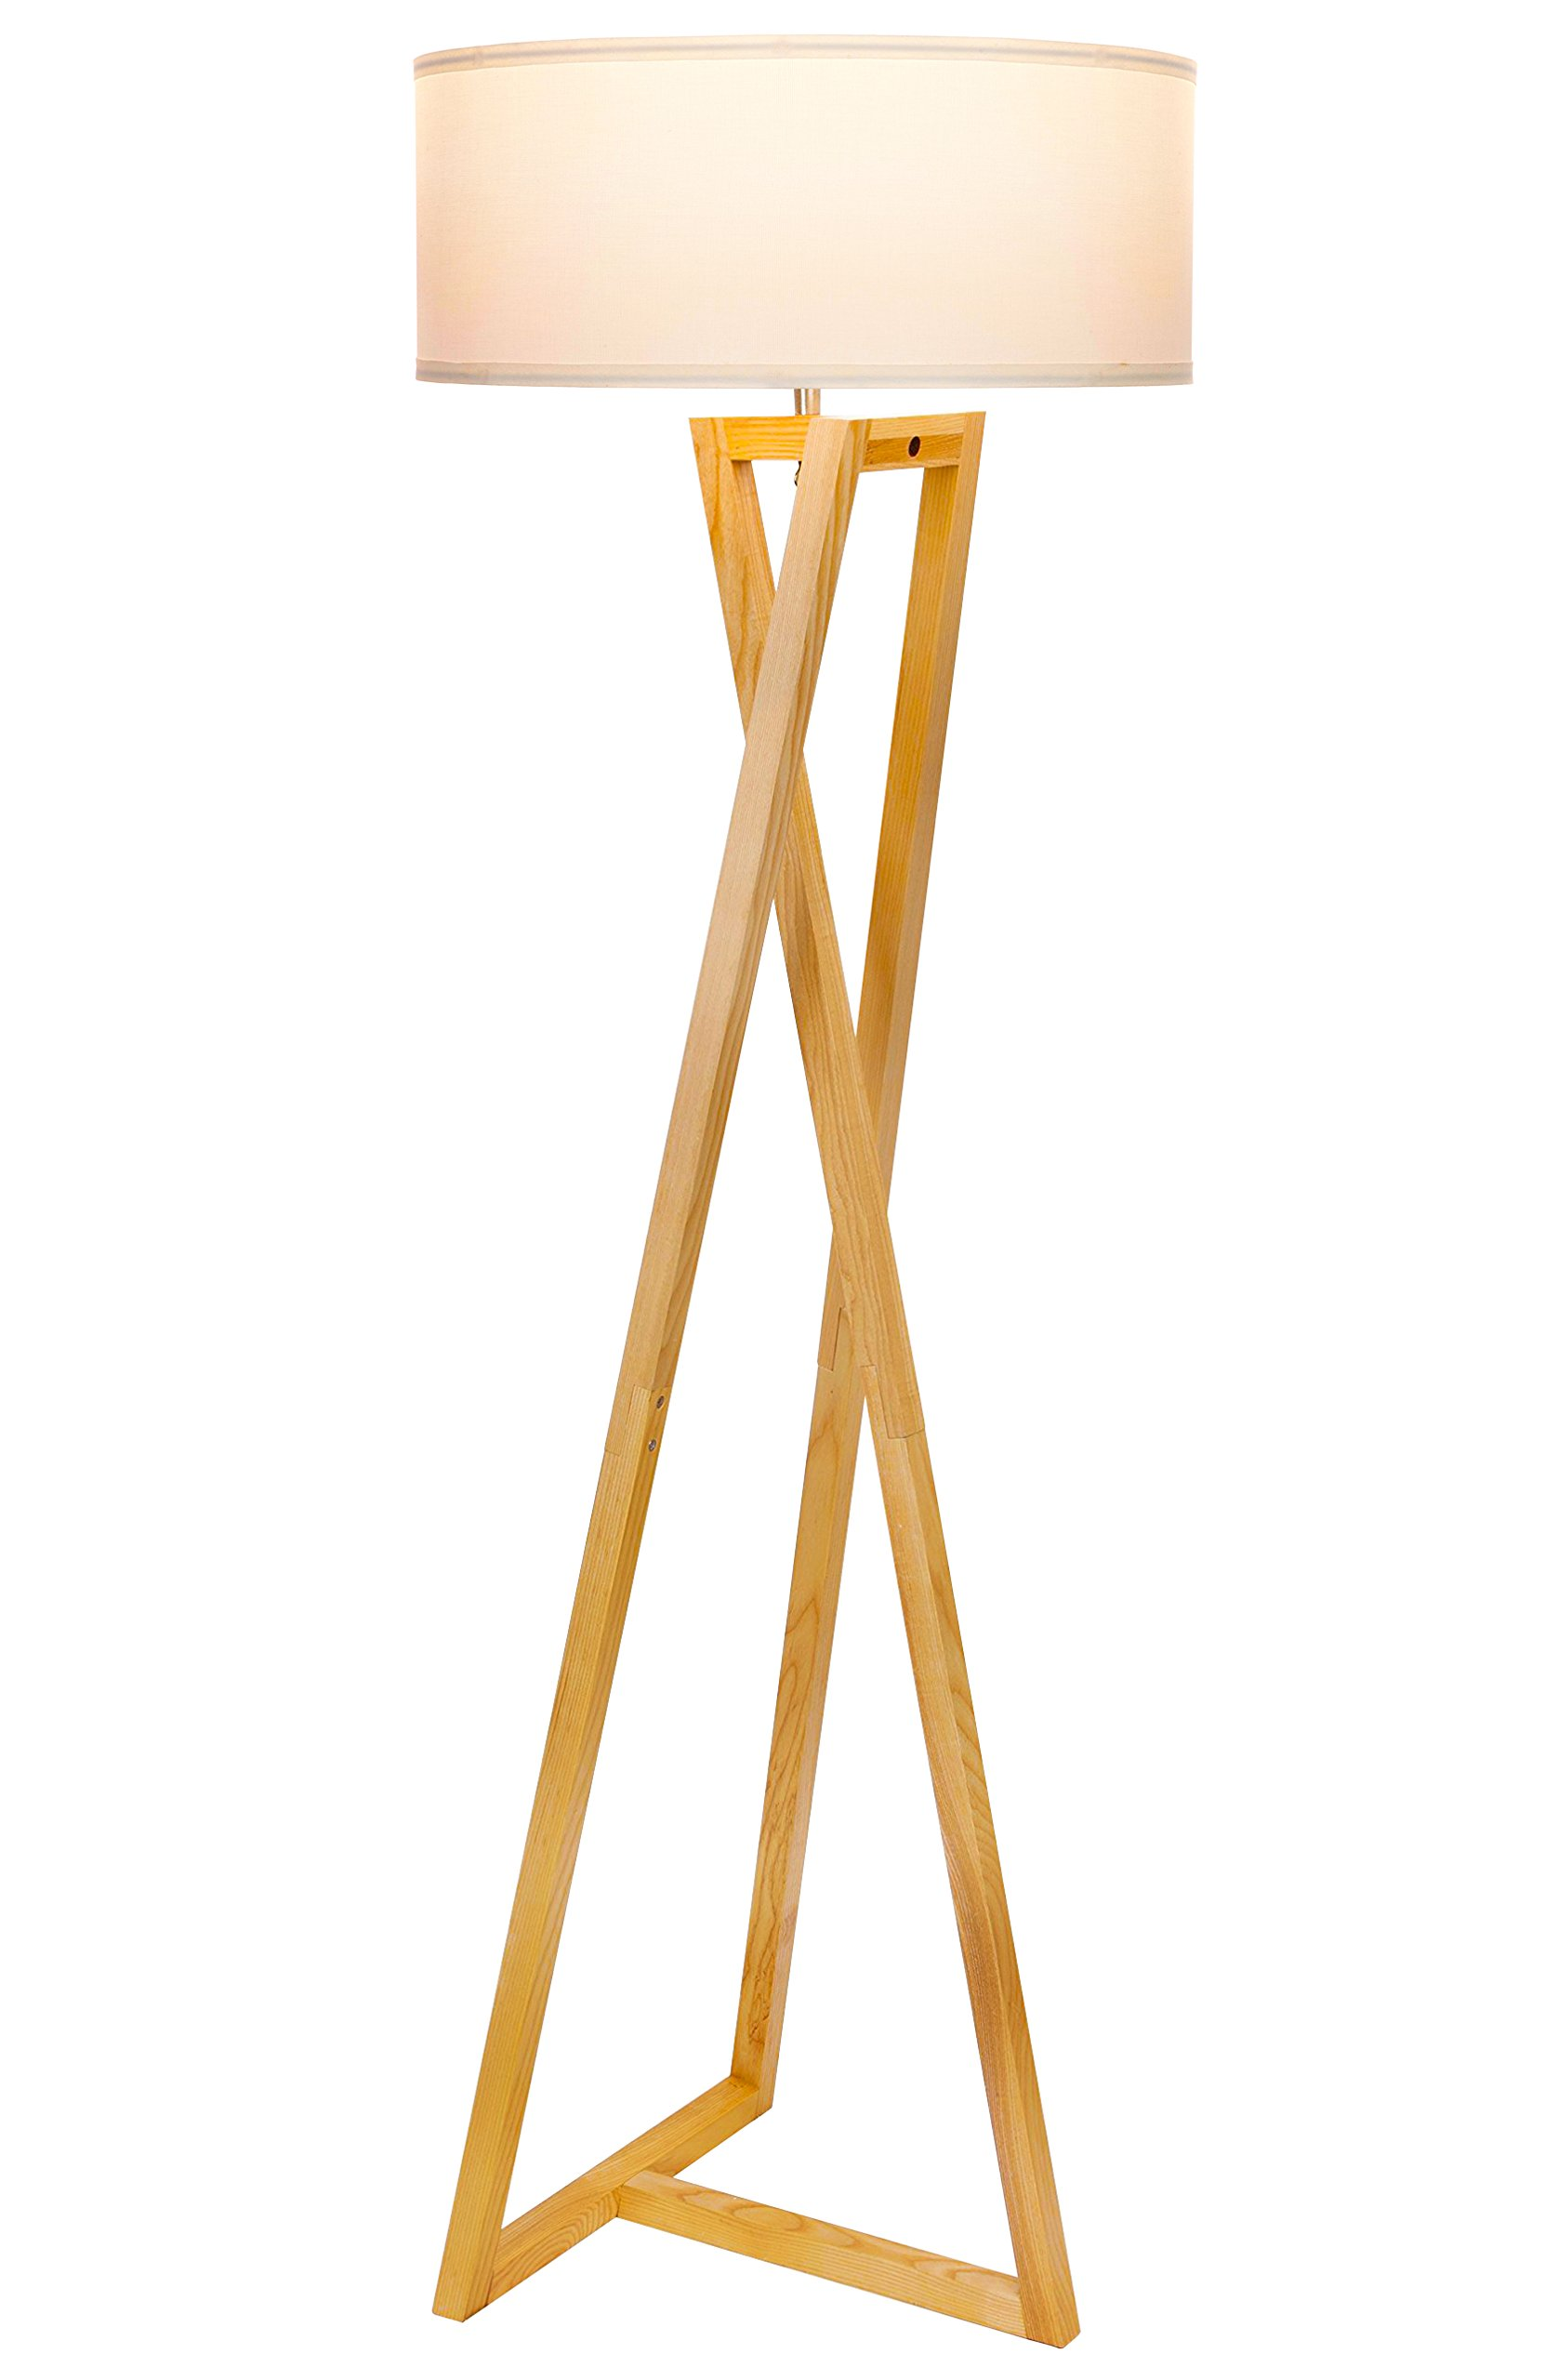 Brightech''Z'' Wood Tripod LED Floor Lamp - Mid Century Modern Light for Living Rooms & Family Rooms - Tall Standing Lighting for Contemporary Bedrooms & Offices